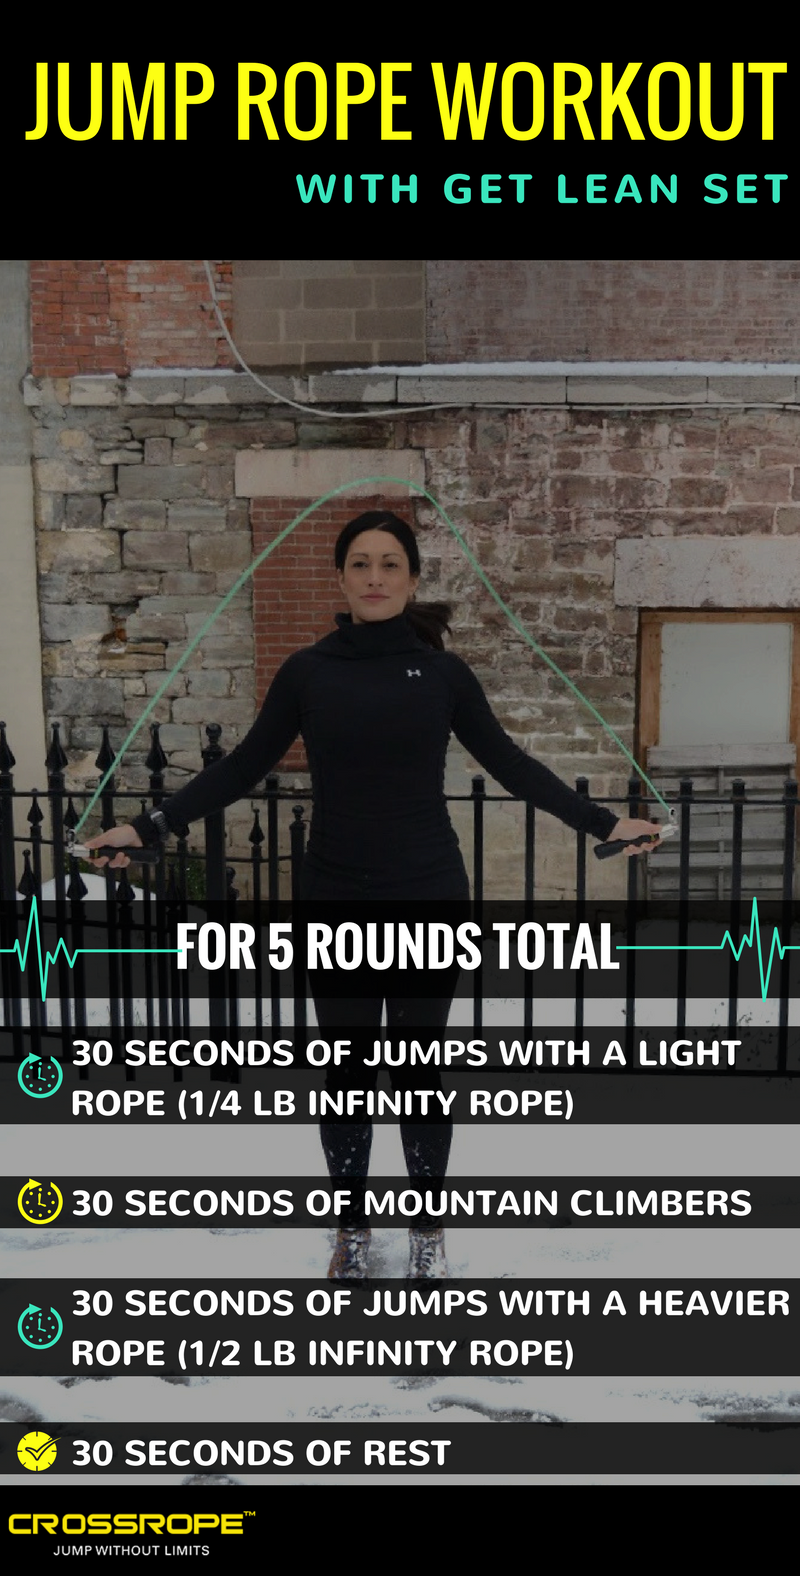 Crossrope Jump Rope Get Lean Workout